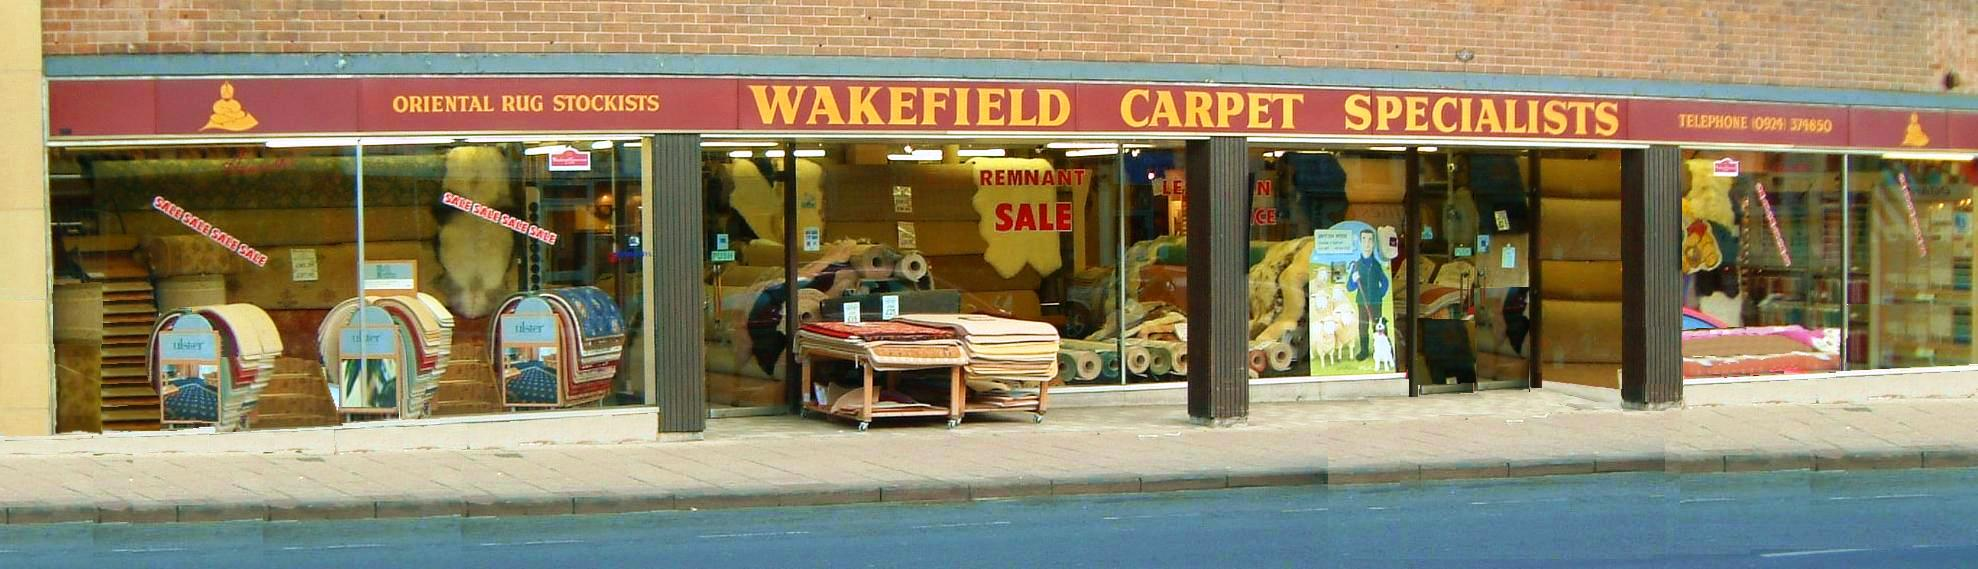 Wakefield Carpet Specialists